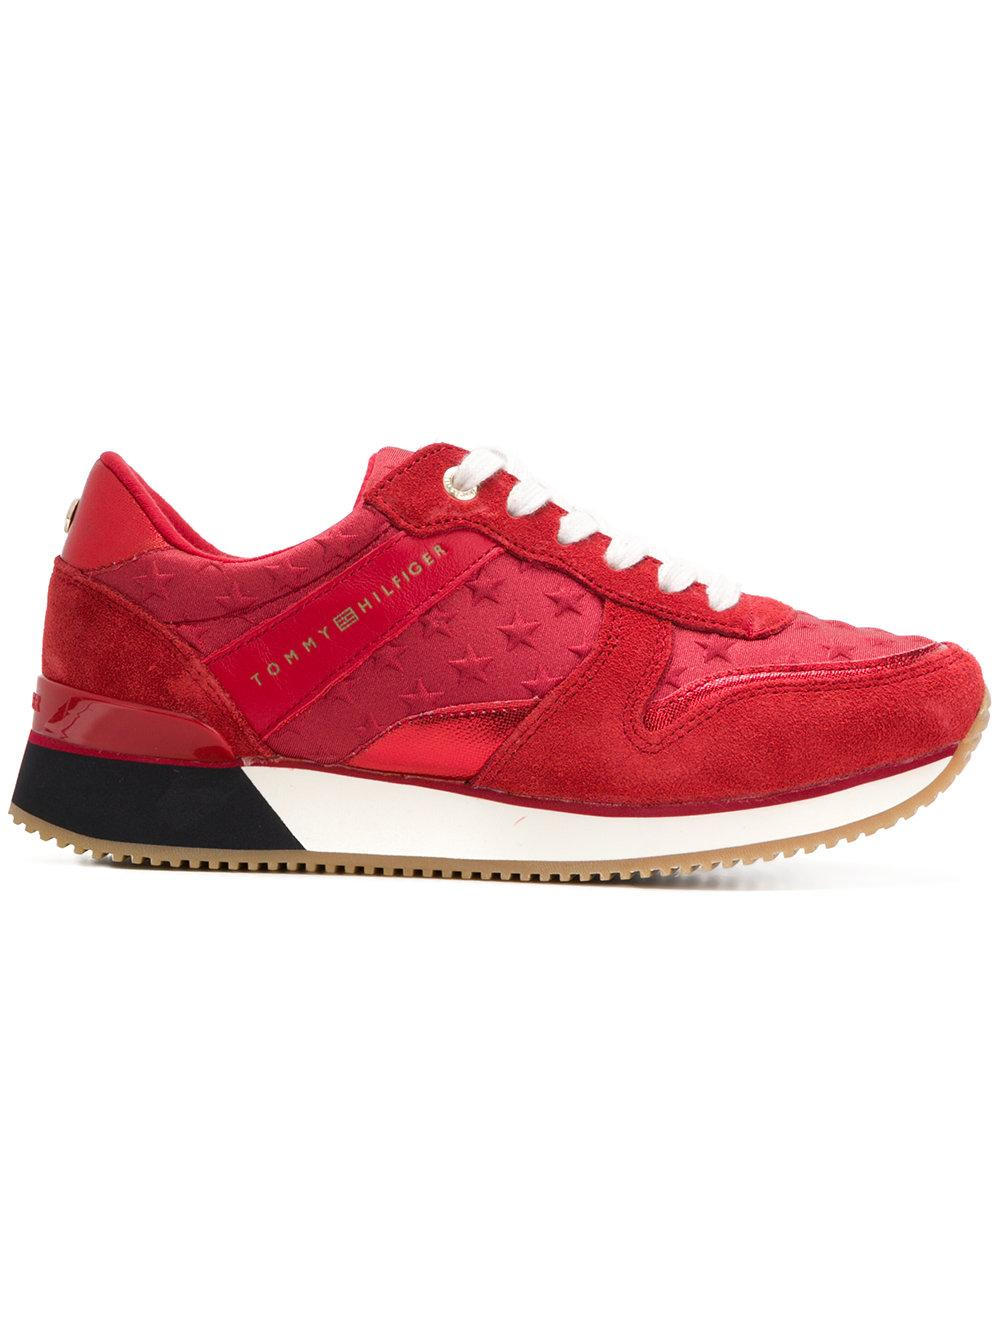 8eebcb9cb20c Tommy Hilfiger Star Embossed Sneakers In Red